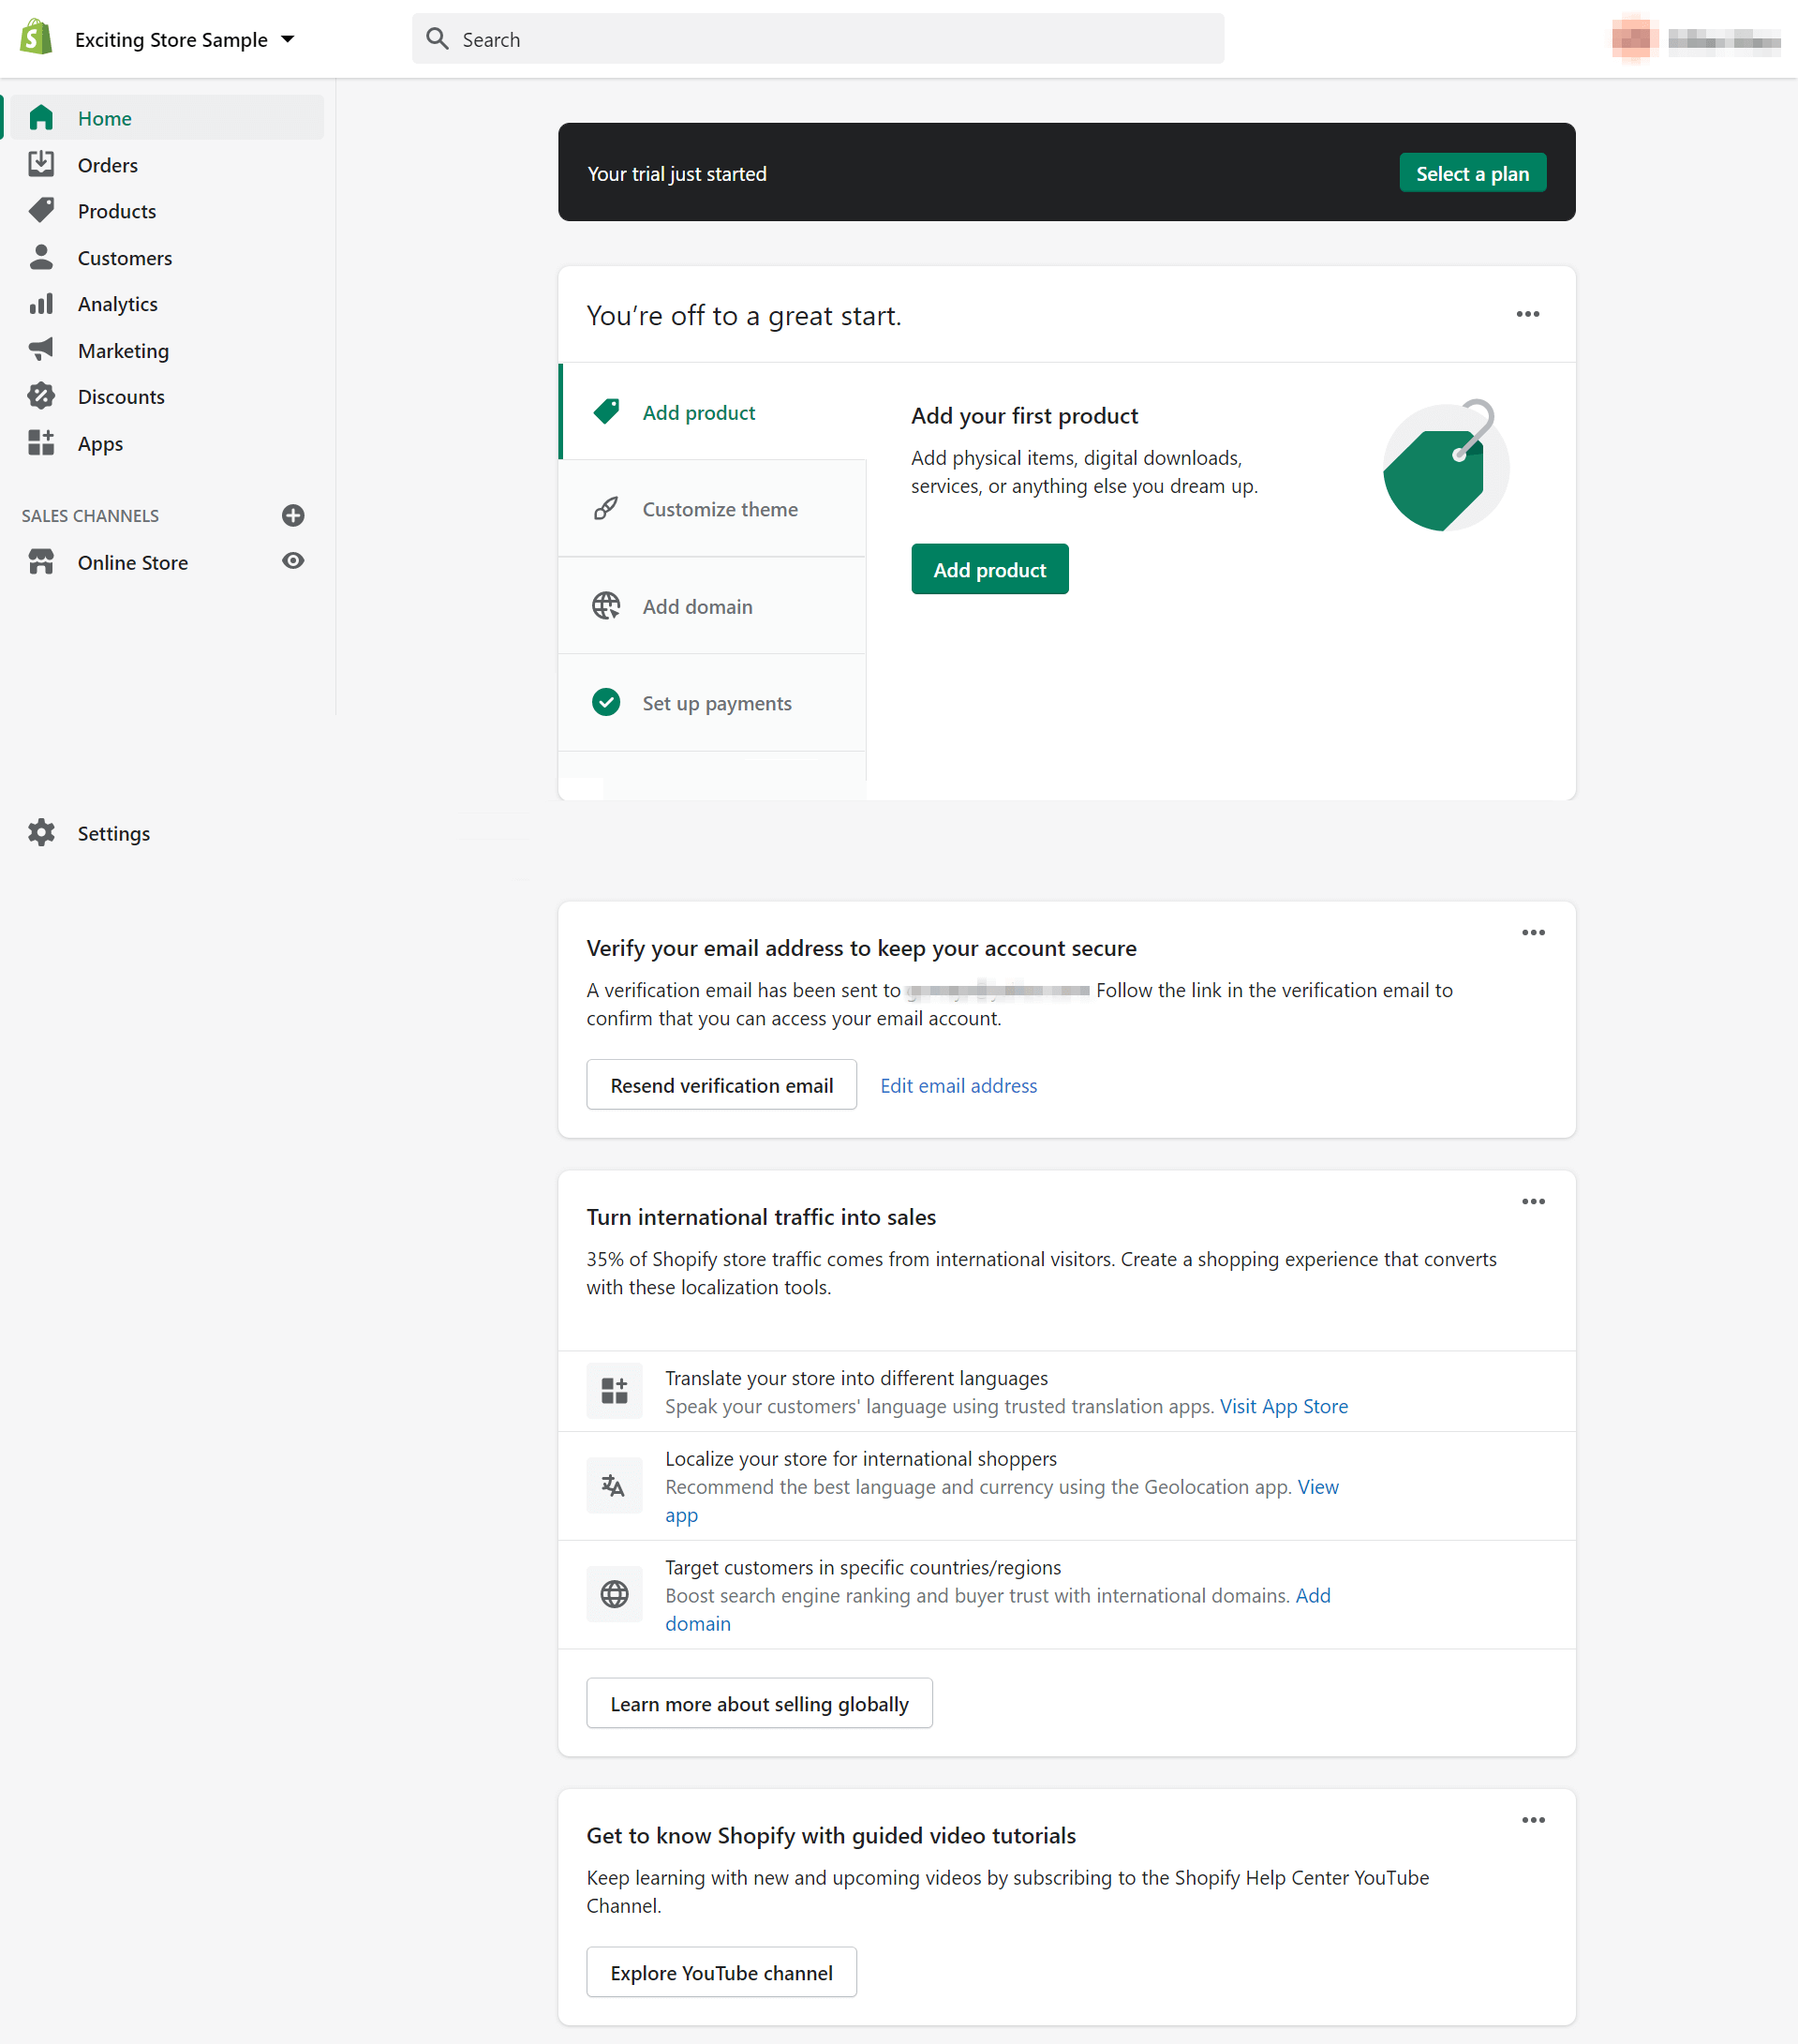 A sample of a Shopify dashboard.